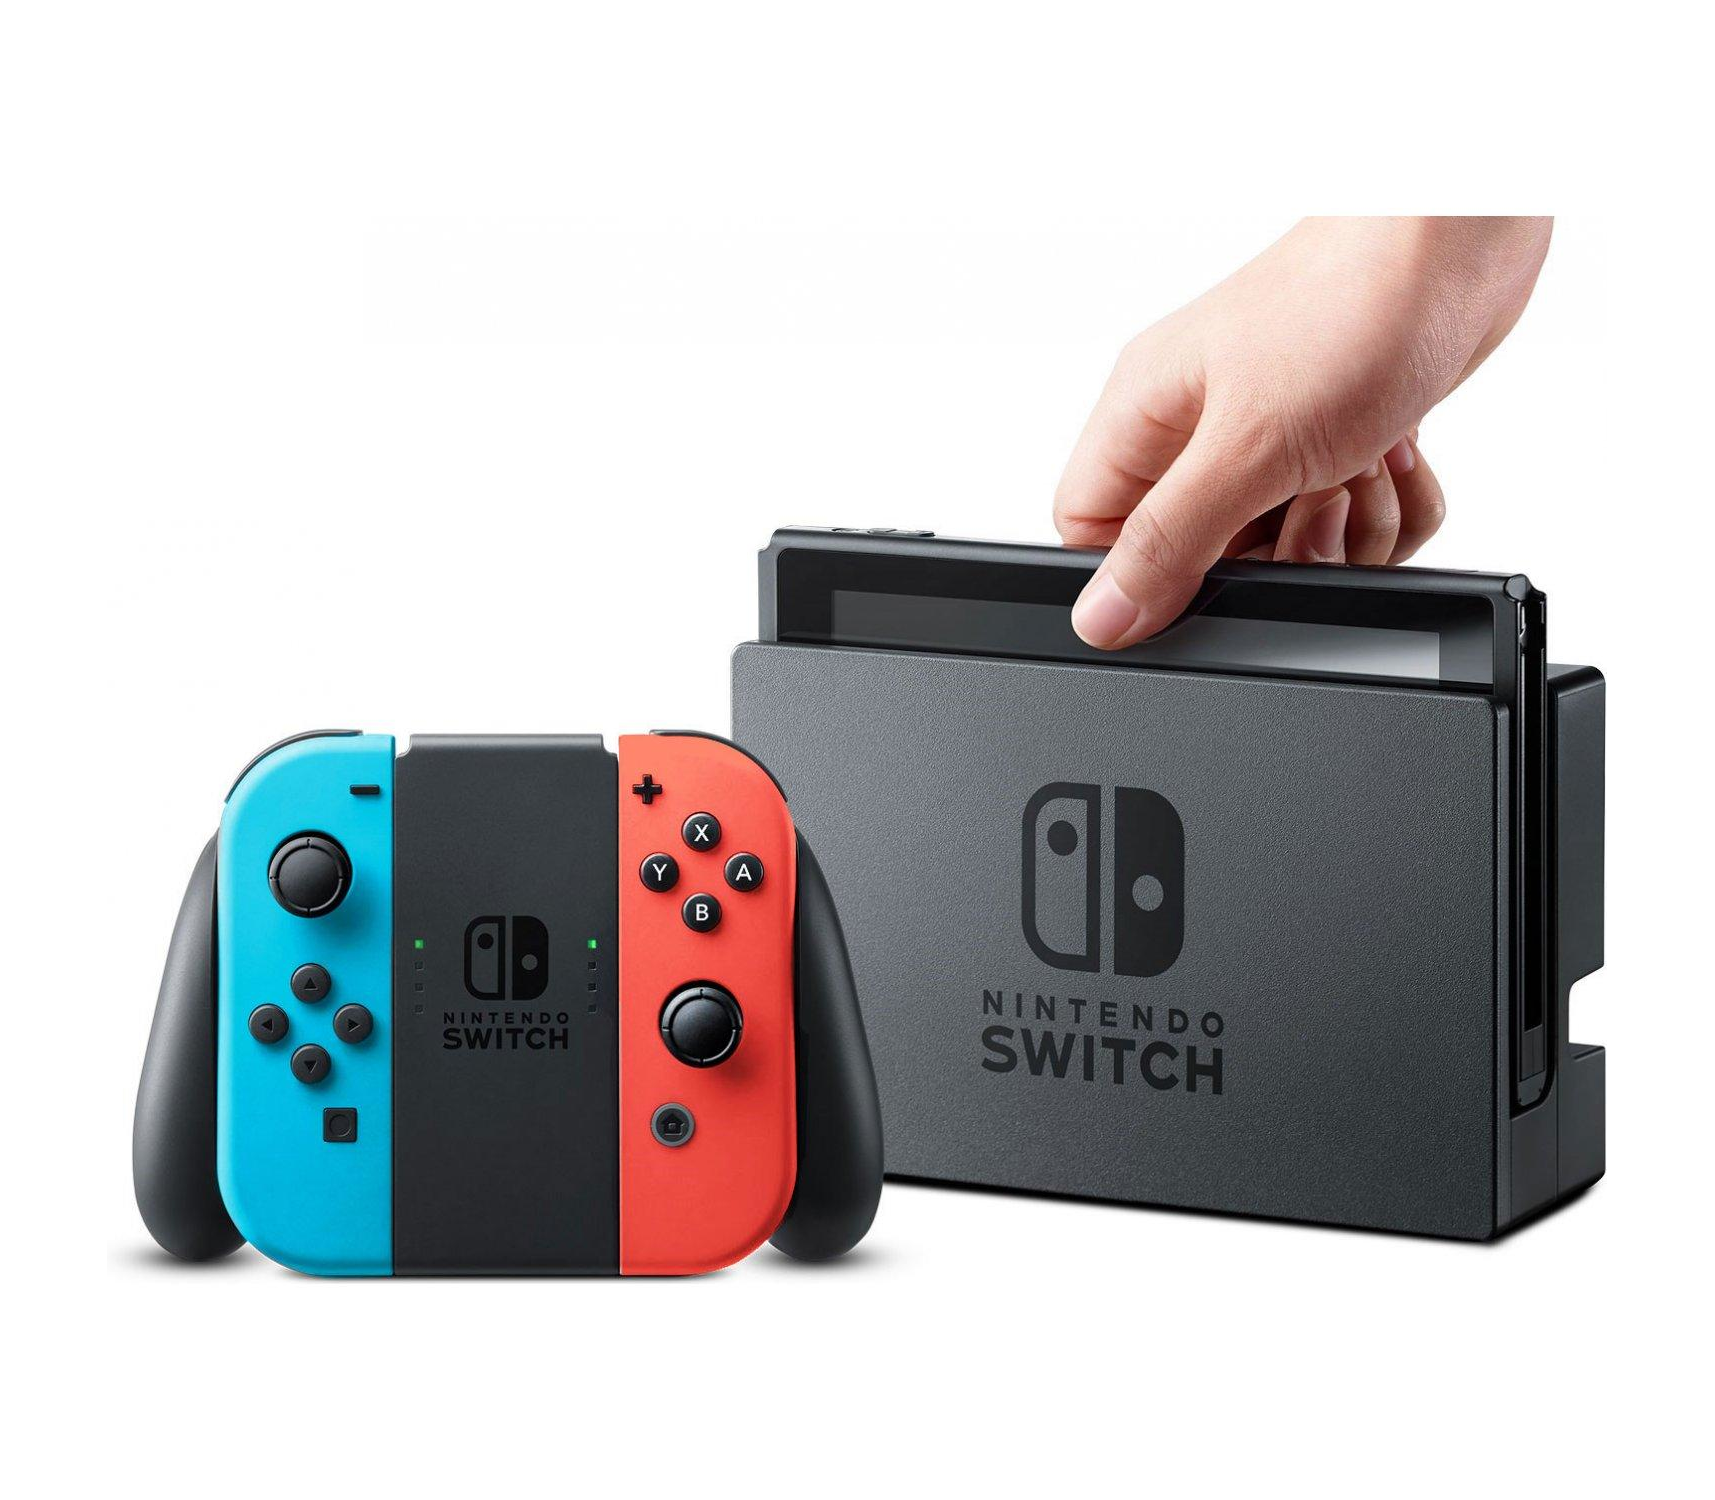 NINTENDO SWITCH CONSOLE SYSTEM.